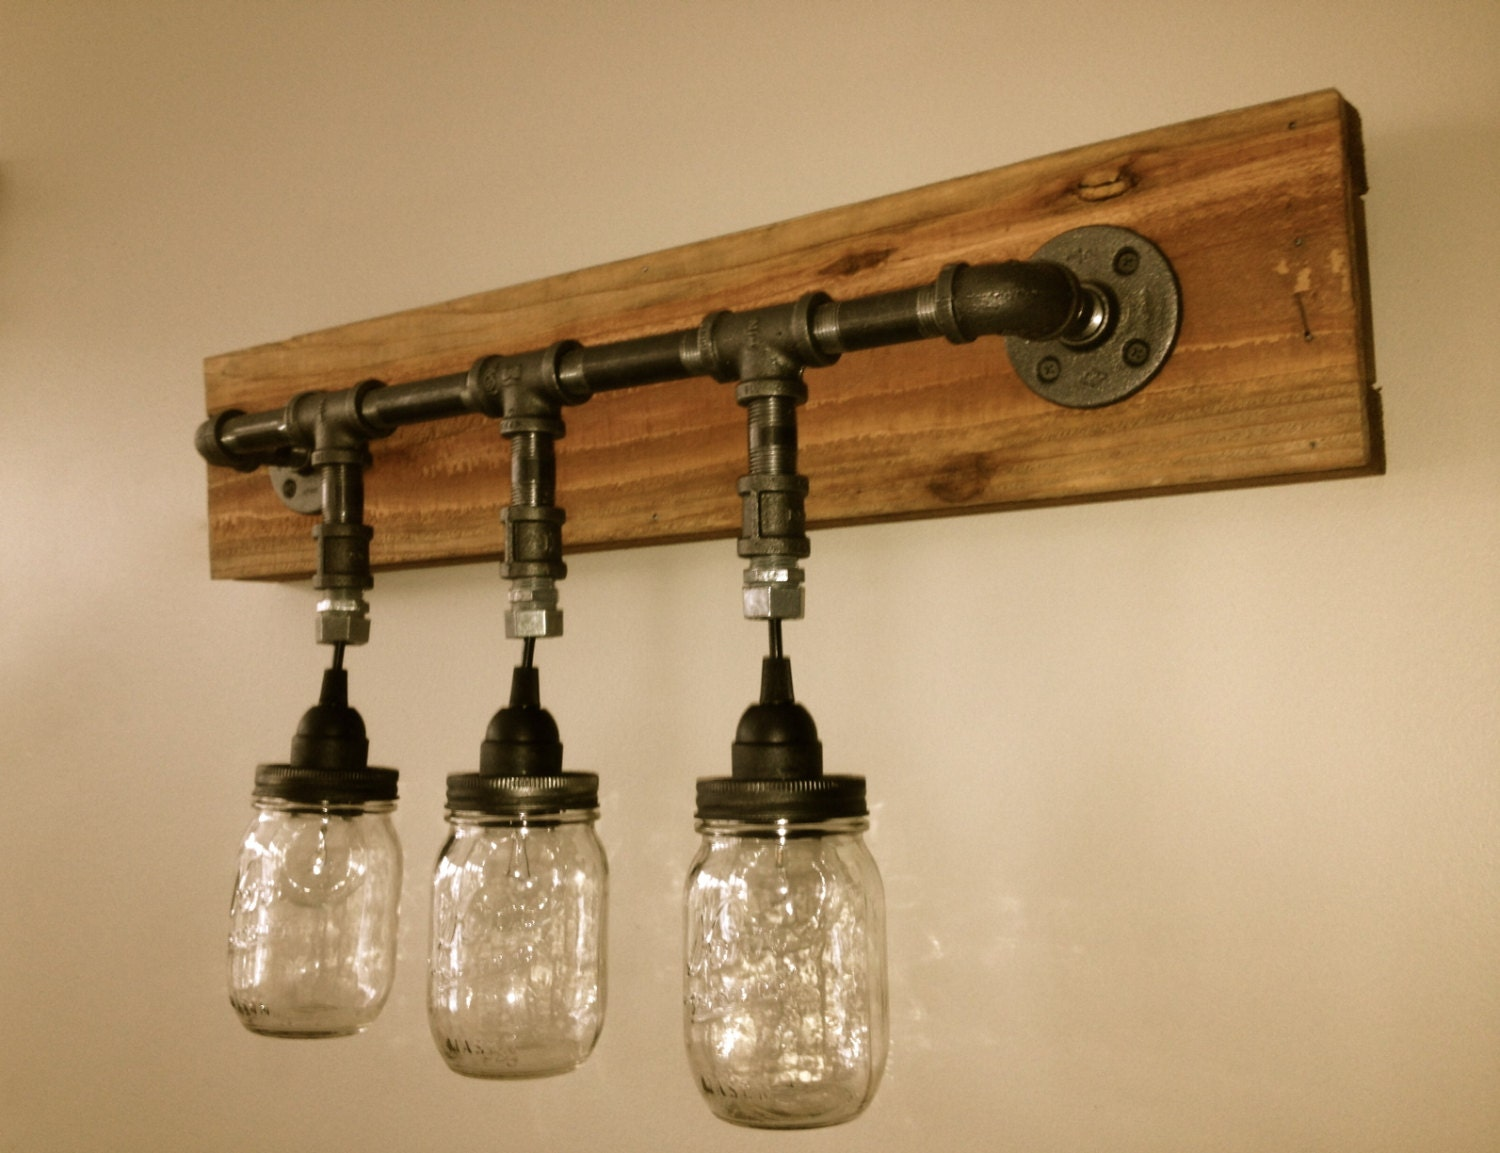 Mason Jar Vanity Lights Diy : Mason Jar Vanity Light Mason Jar Wall Light by ChicagoLights